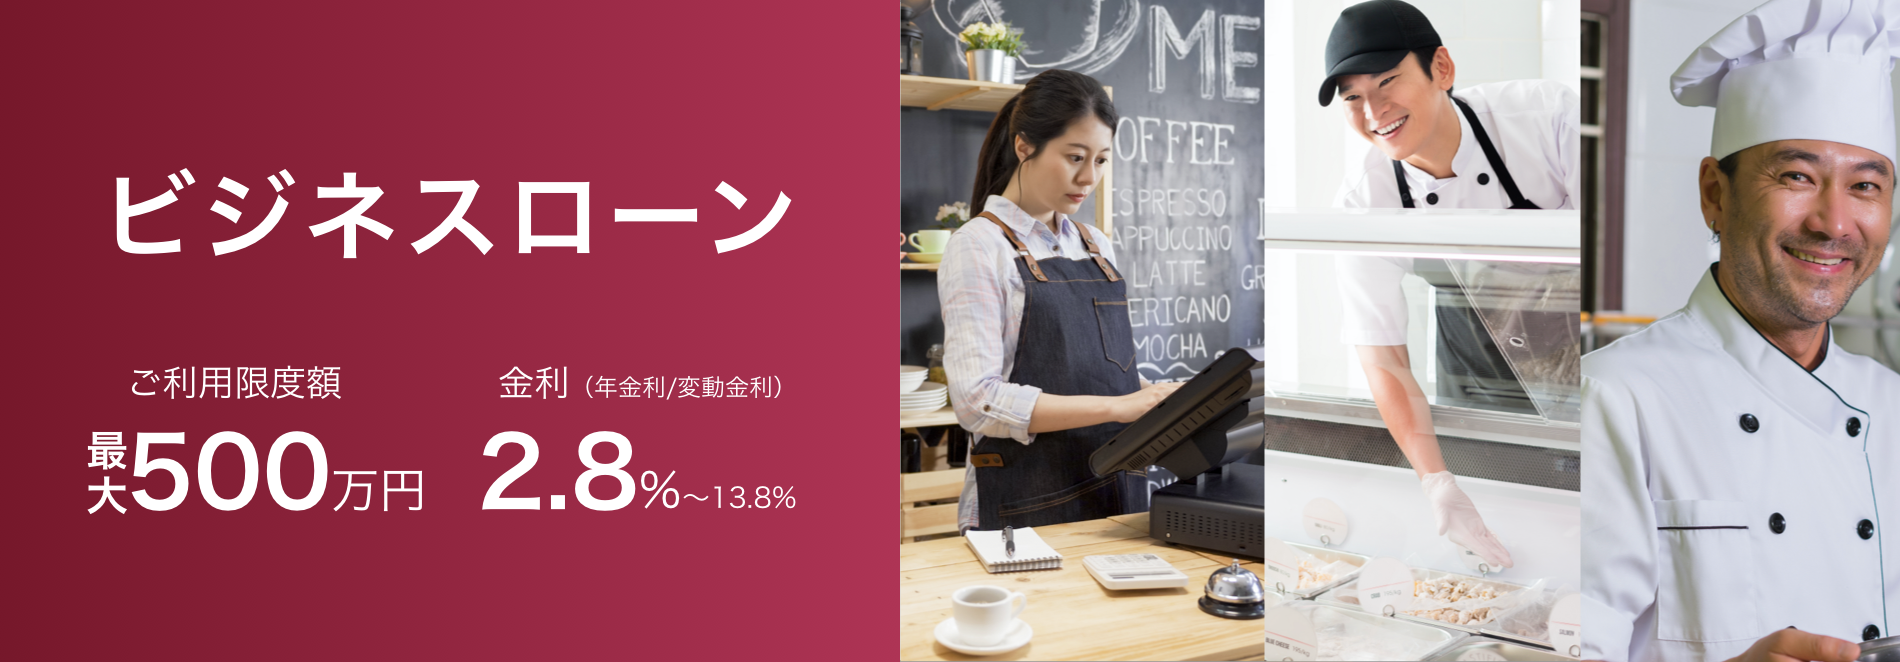 PayPay加盟店様向けビジネスローン